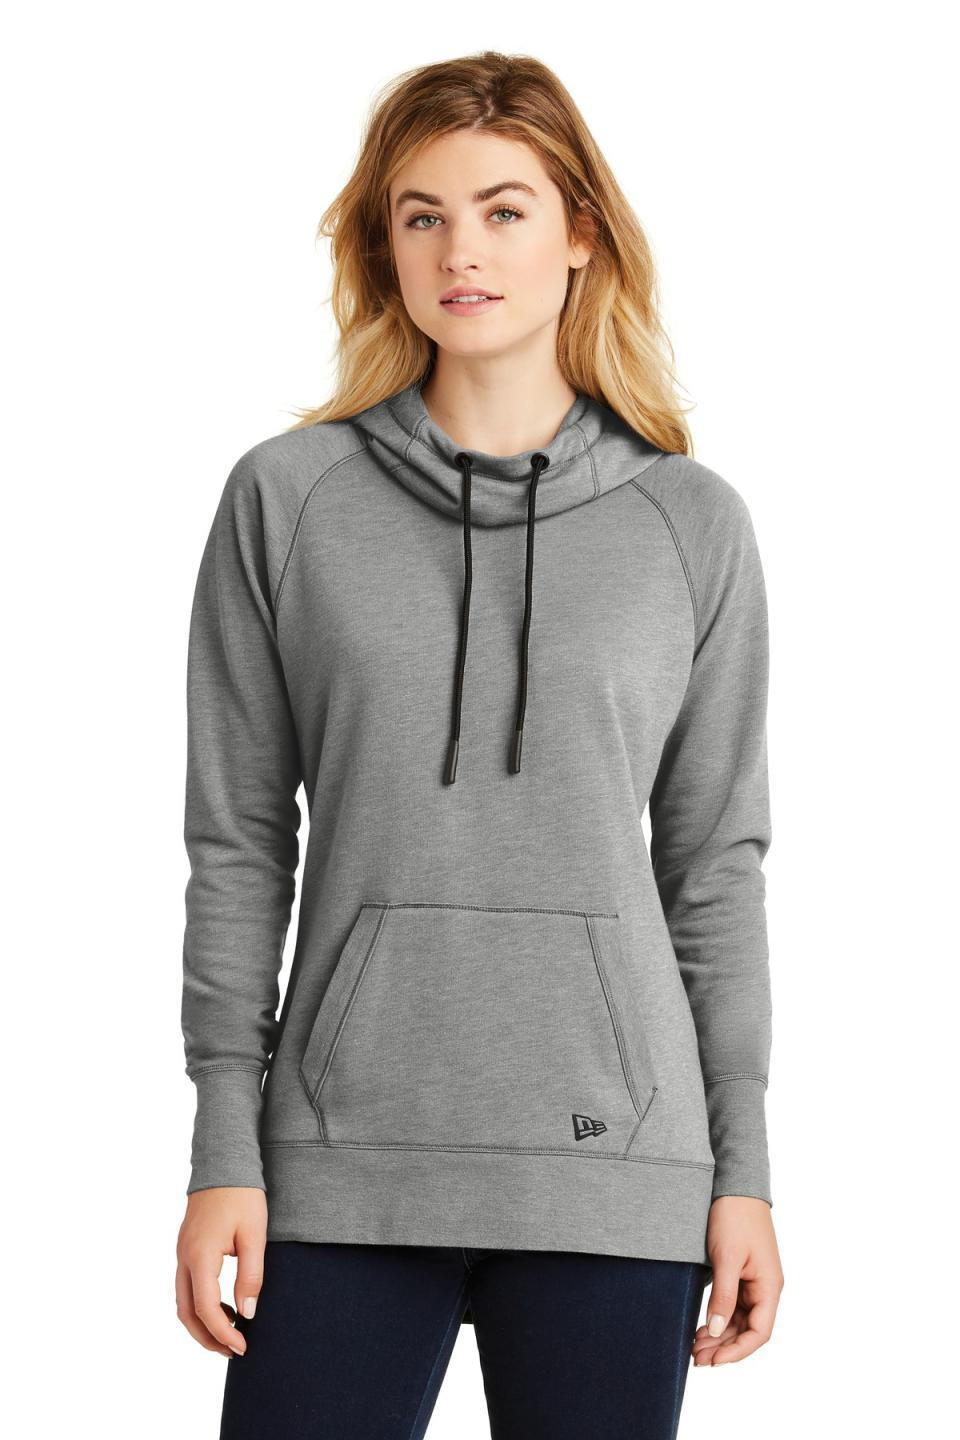 New Era Women's Tri-Blend Fleece Pullover Hoodie